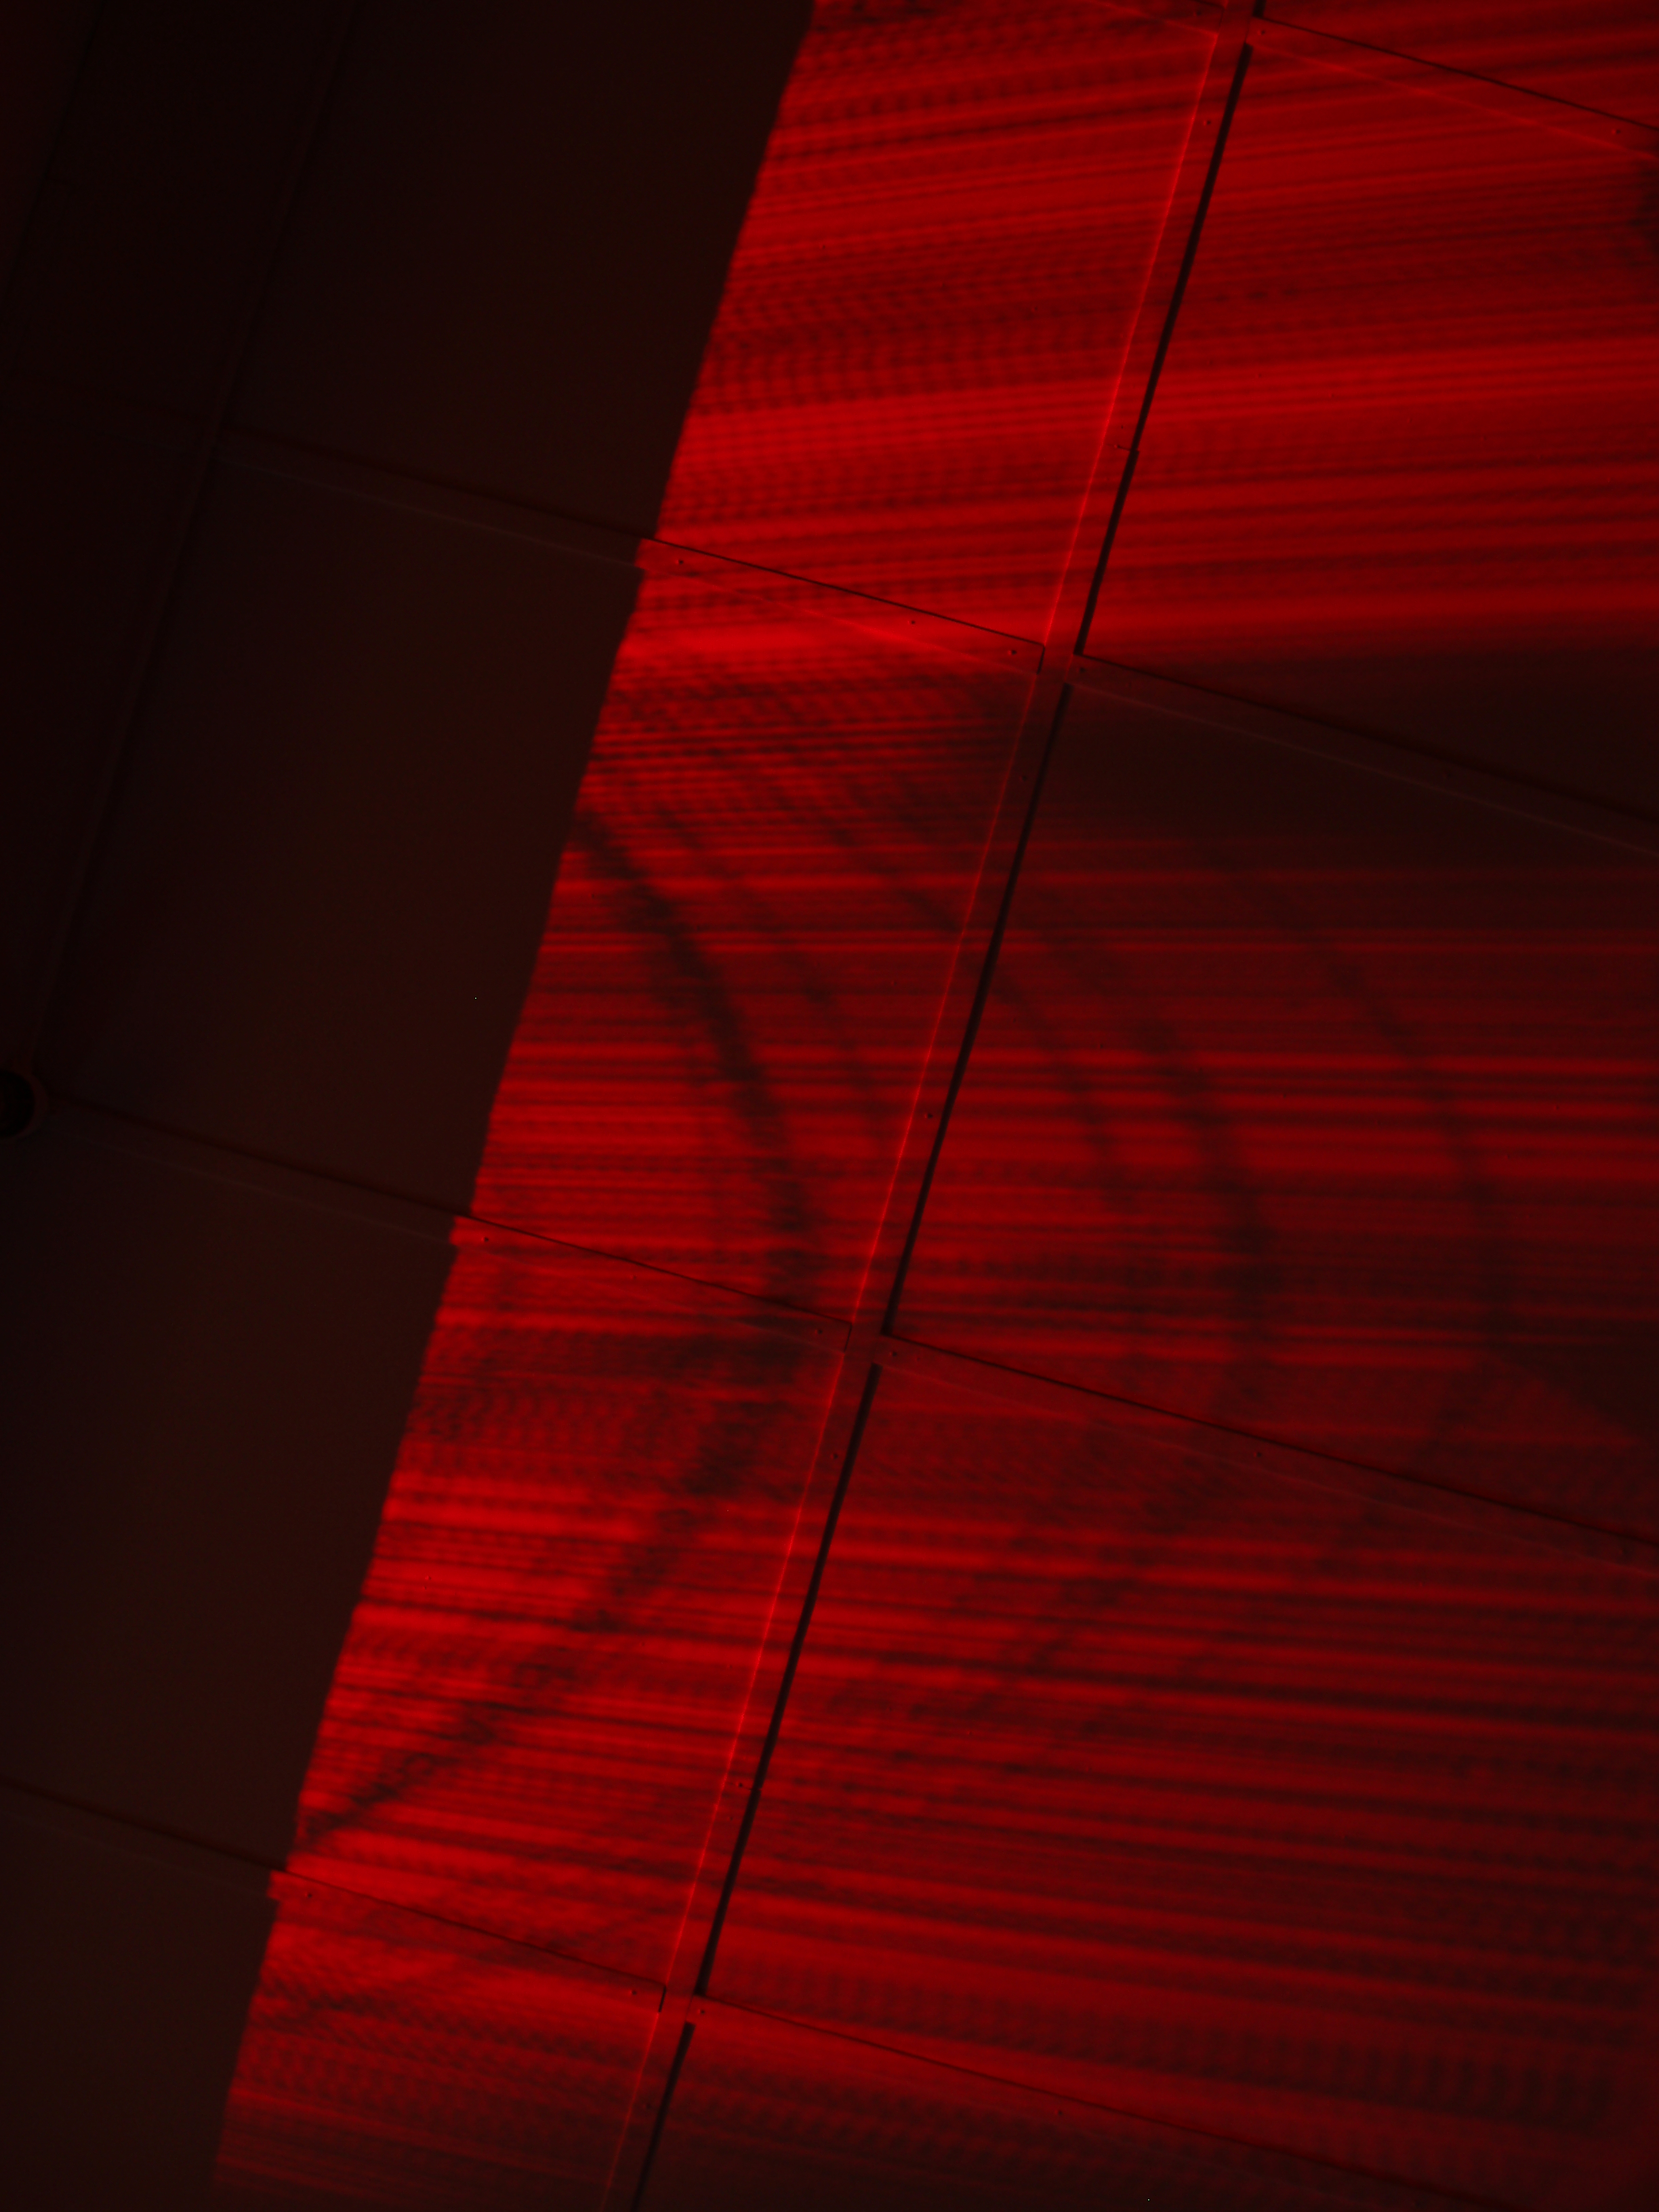 abstract patterns on the ceiling made by a red light